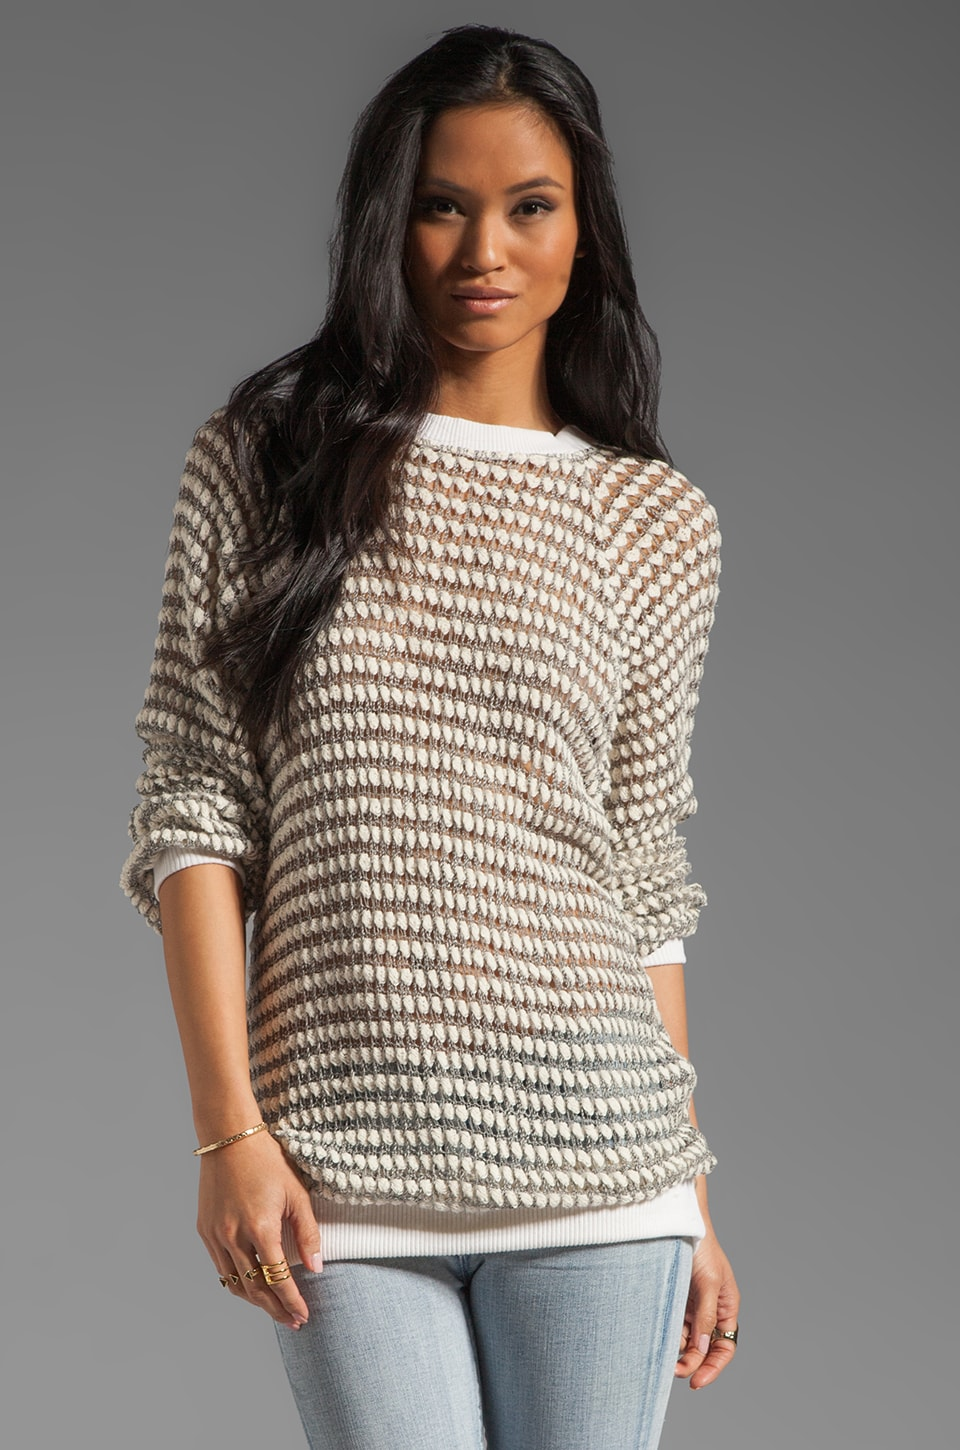 Nightcap Arrowpoint Sweater in Cream/Grey